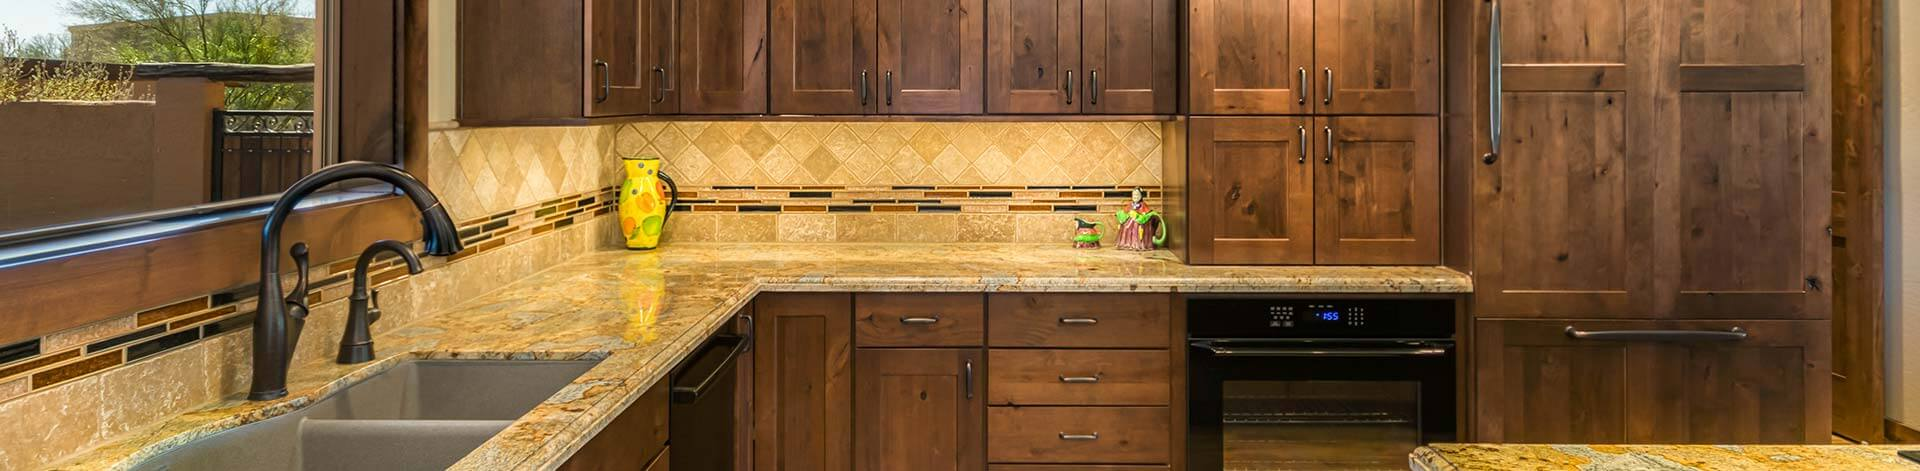 Kitchen Remodeling Republic West Remodeling Phoenix Scottsdale Az